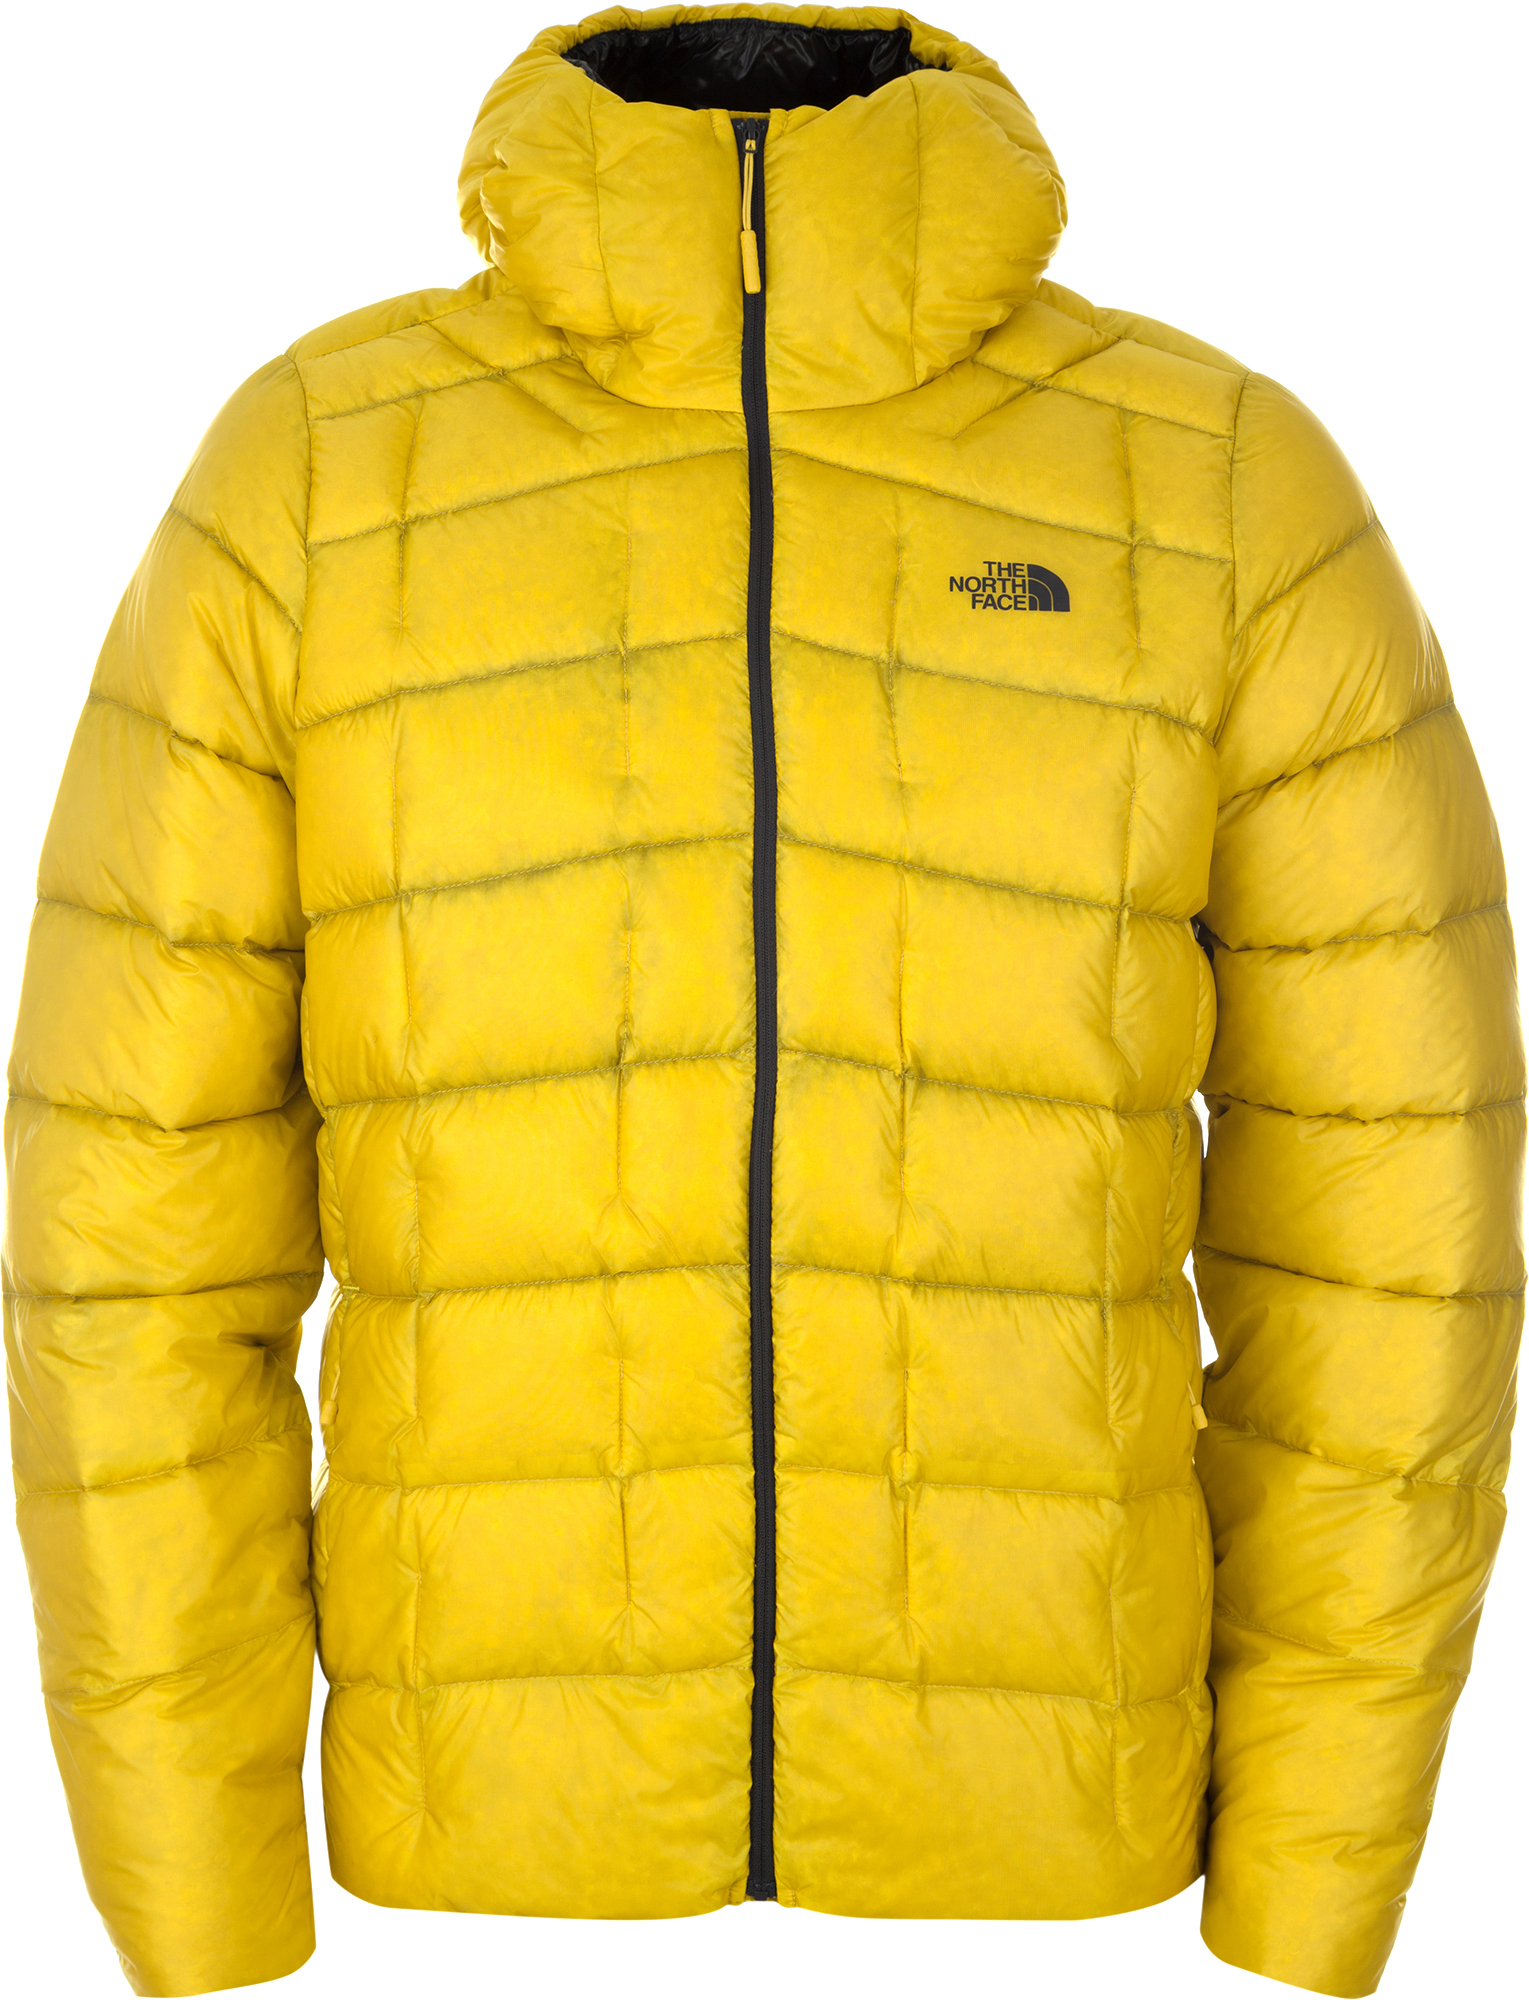 The North Face Куртка пуховая мужская The North Face Supercinco худи north pole